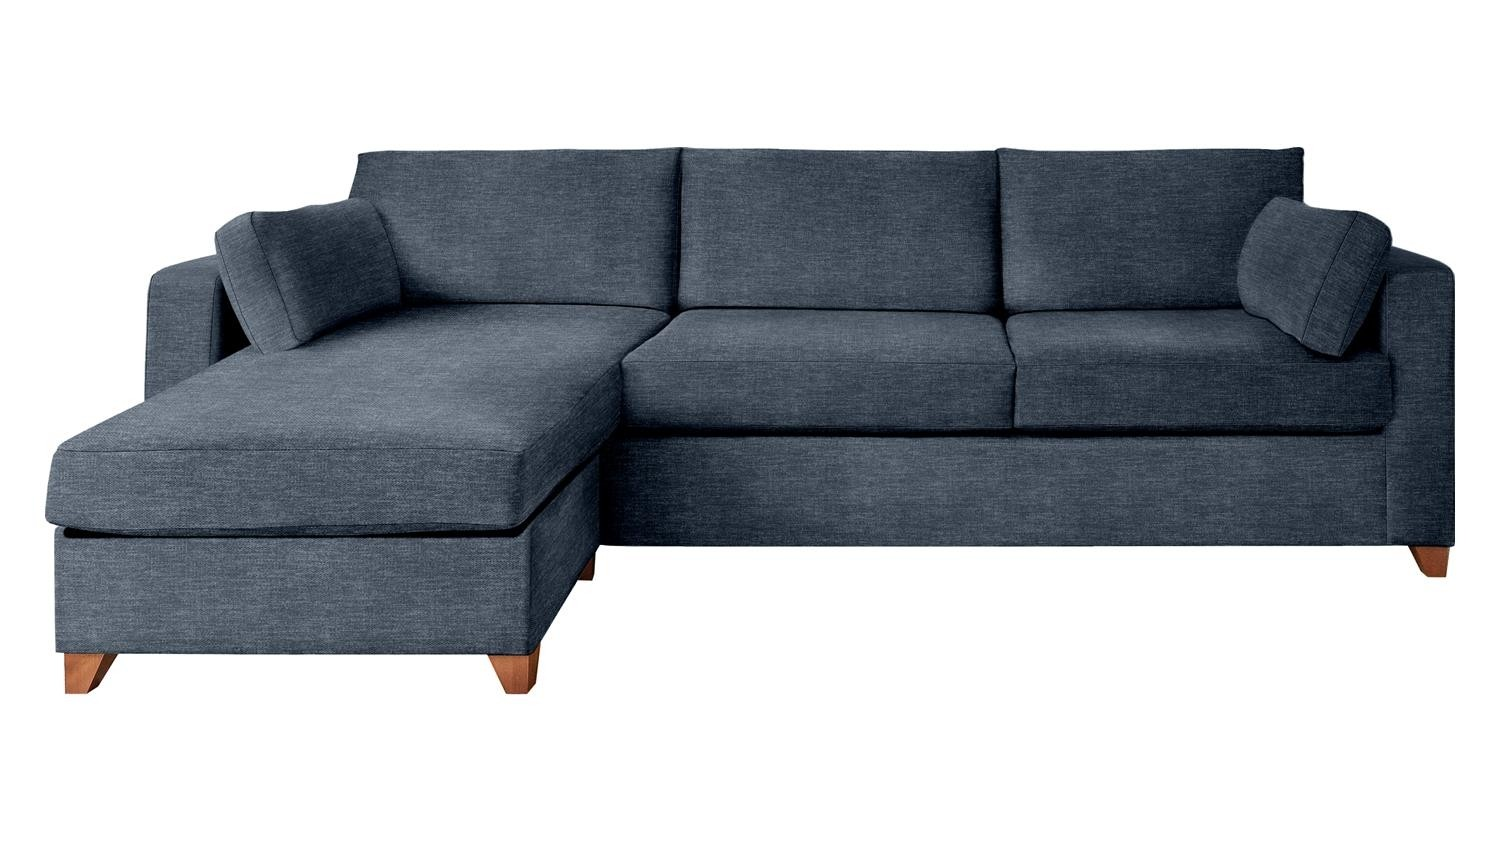 The Ashwell 5 Seater Left Chaise Storage Sofa Bed